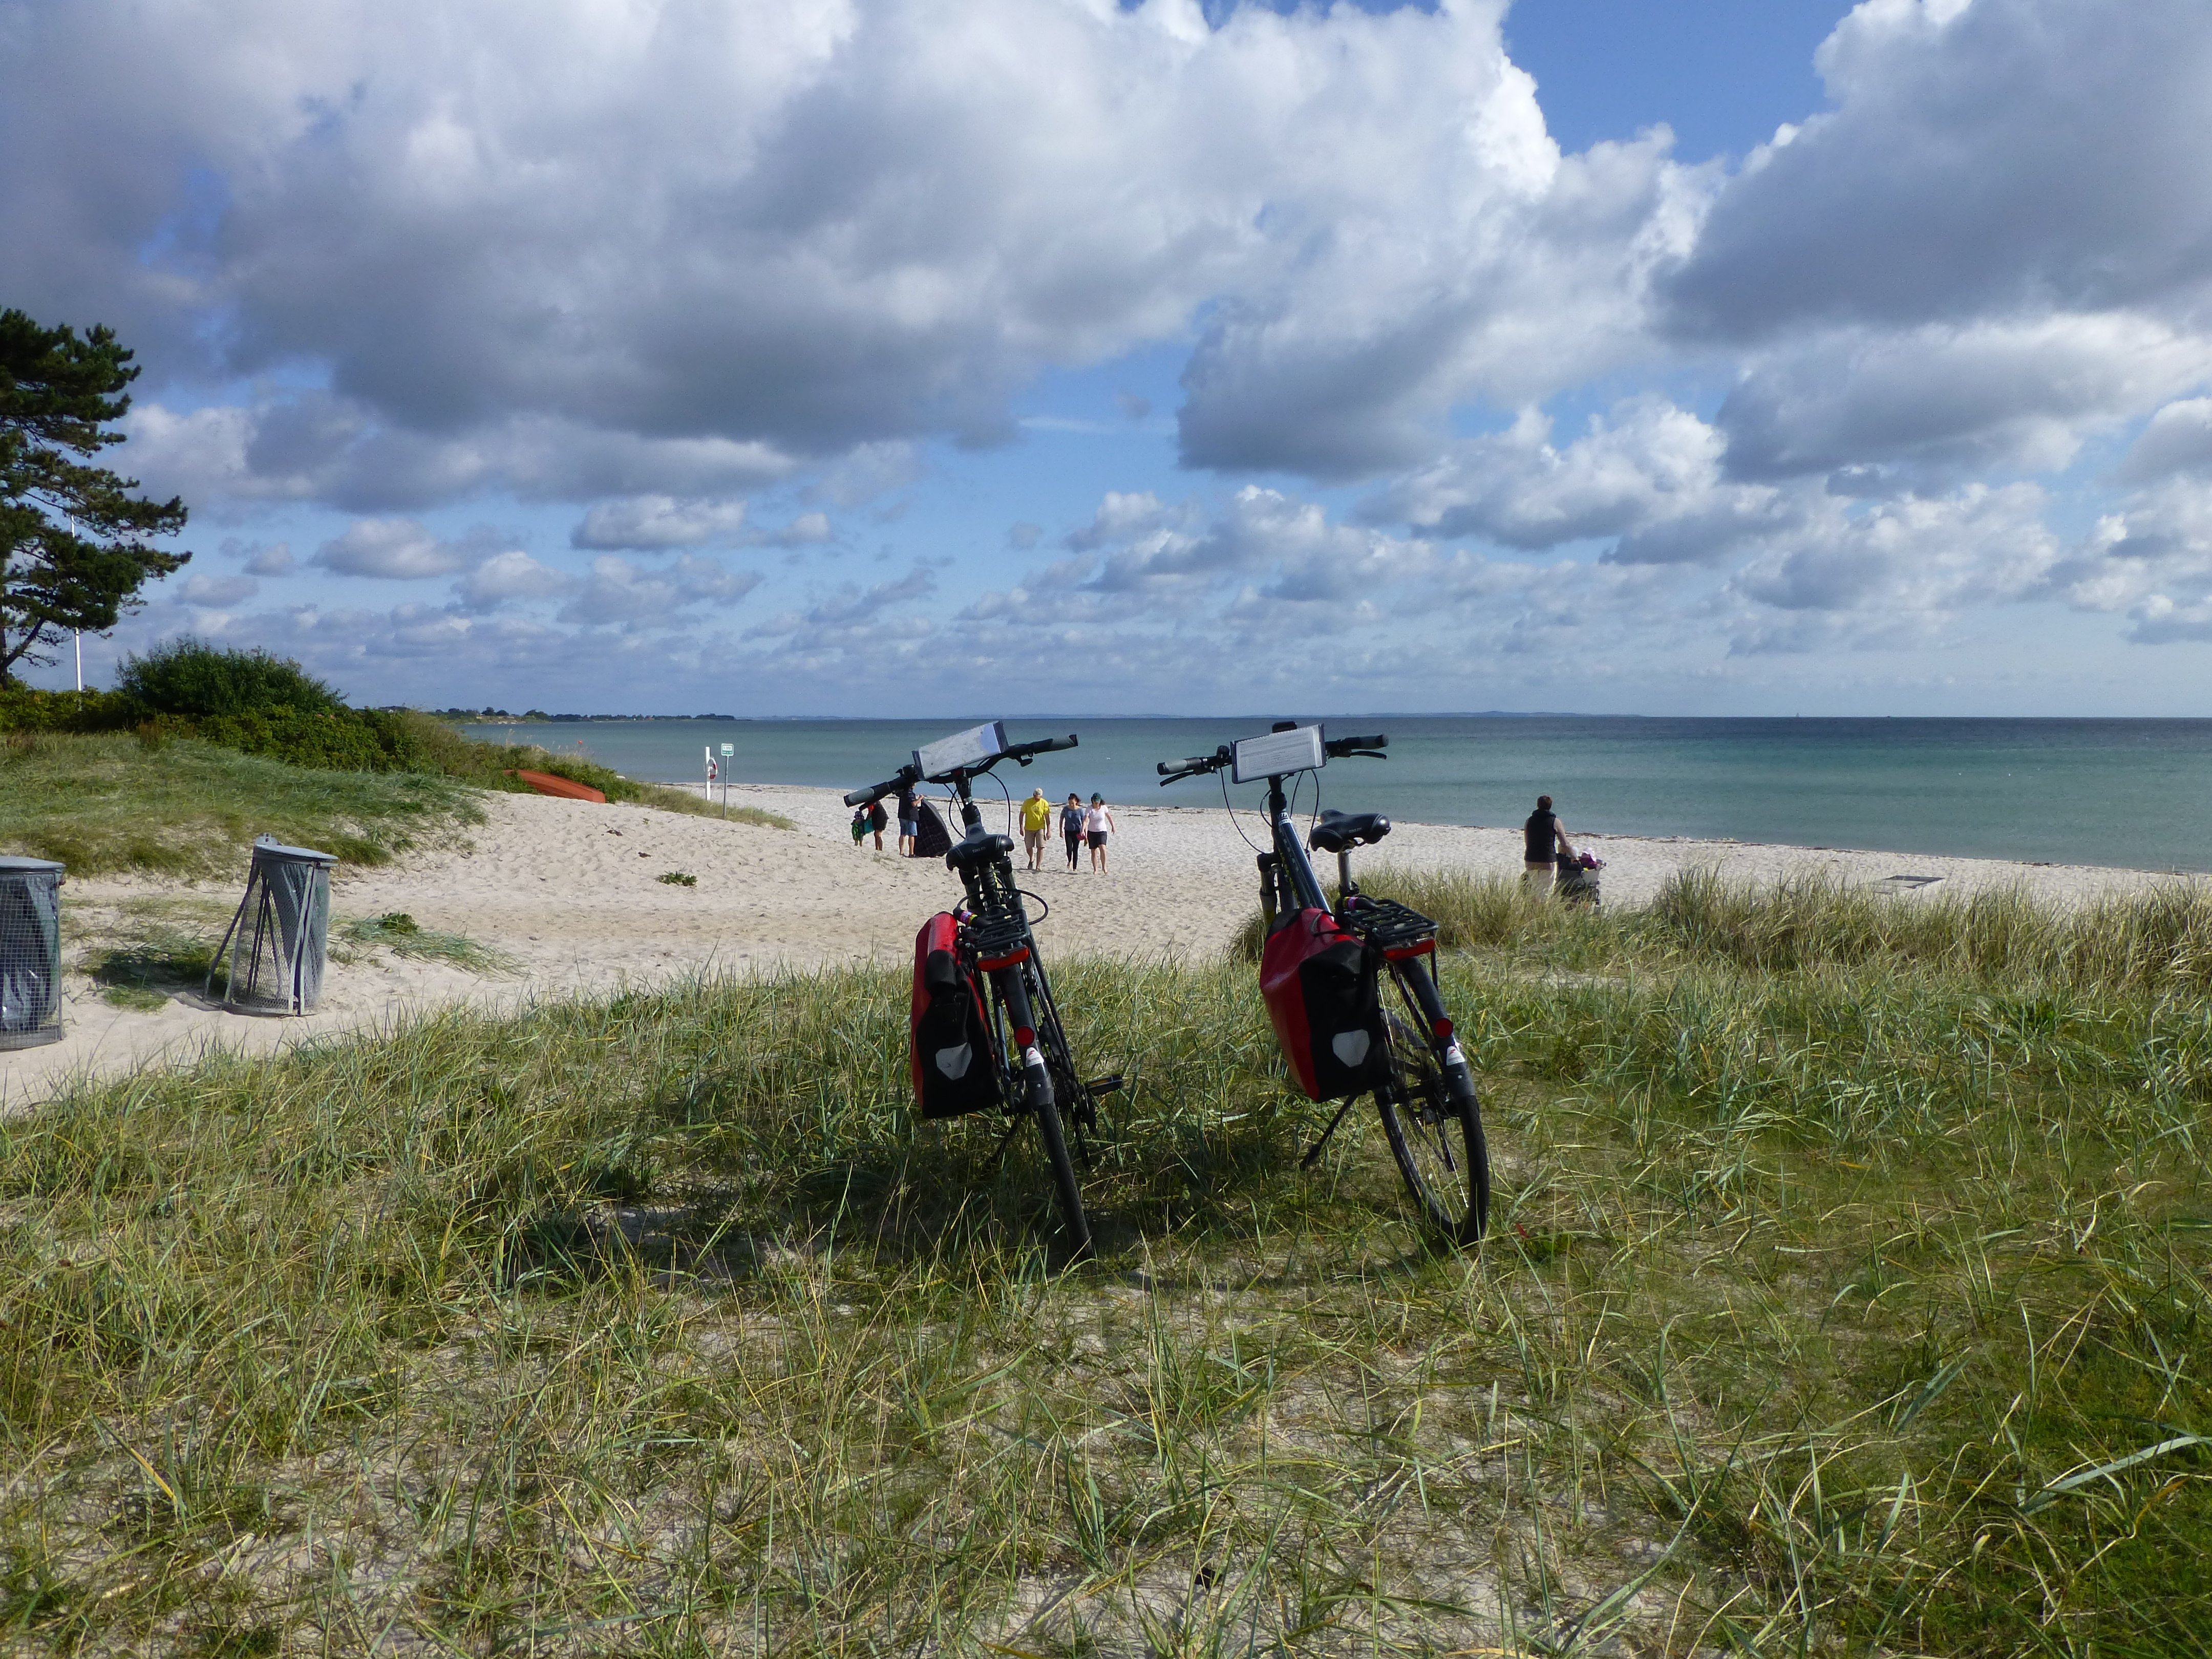 Cycling along the beach in East Jutland